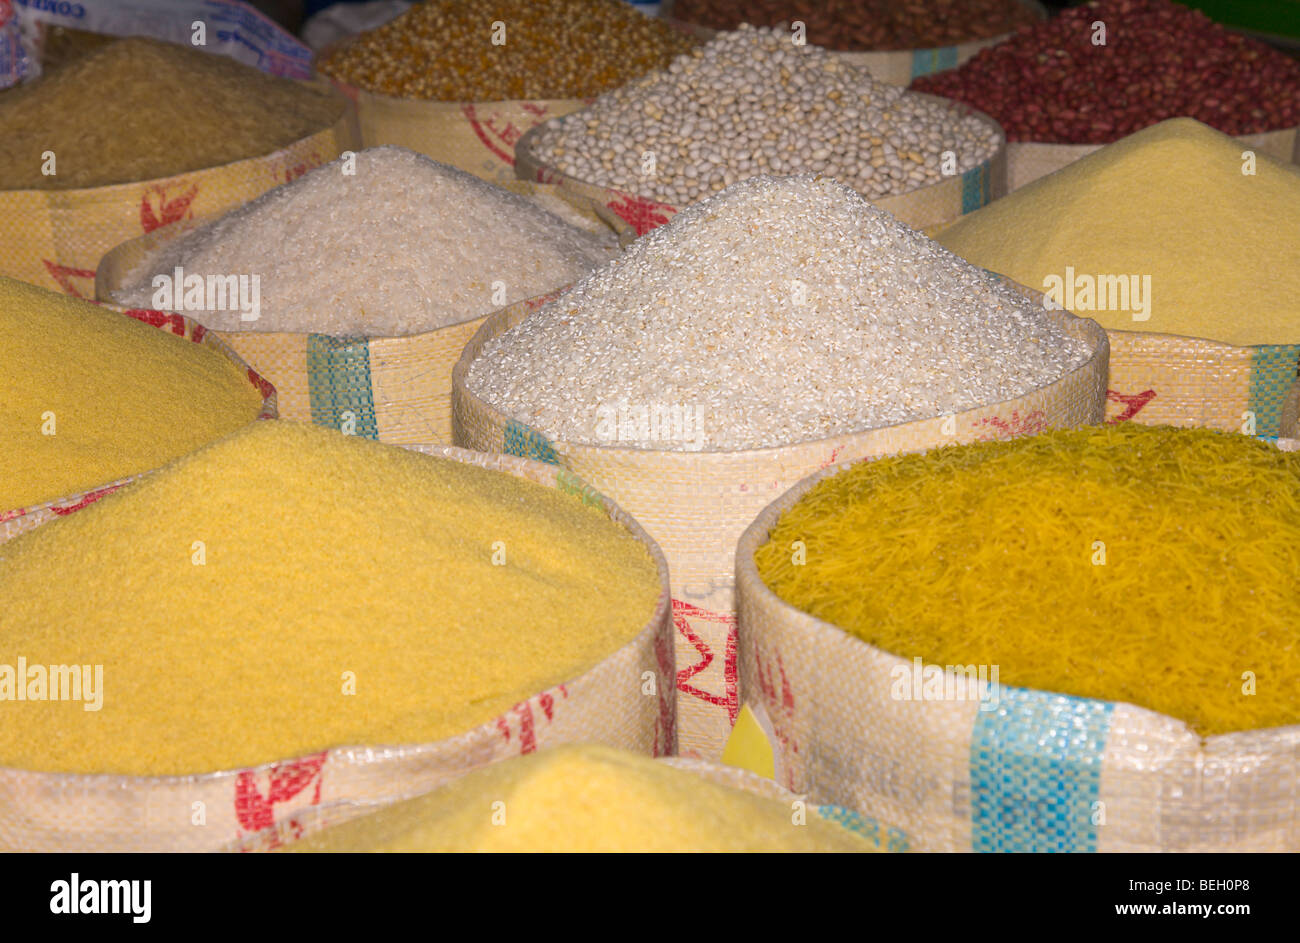 Pasta grain and rice in sacks at the souk in Taroudant Morocco - Stock Image